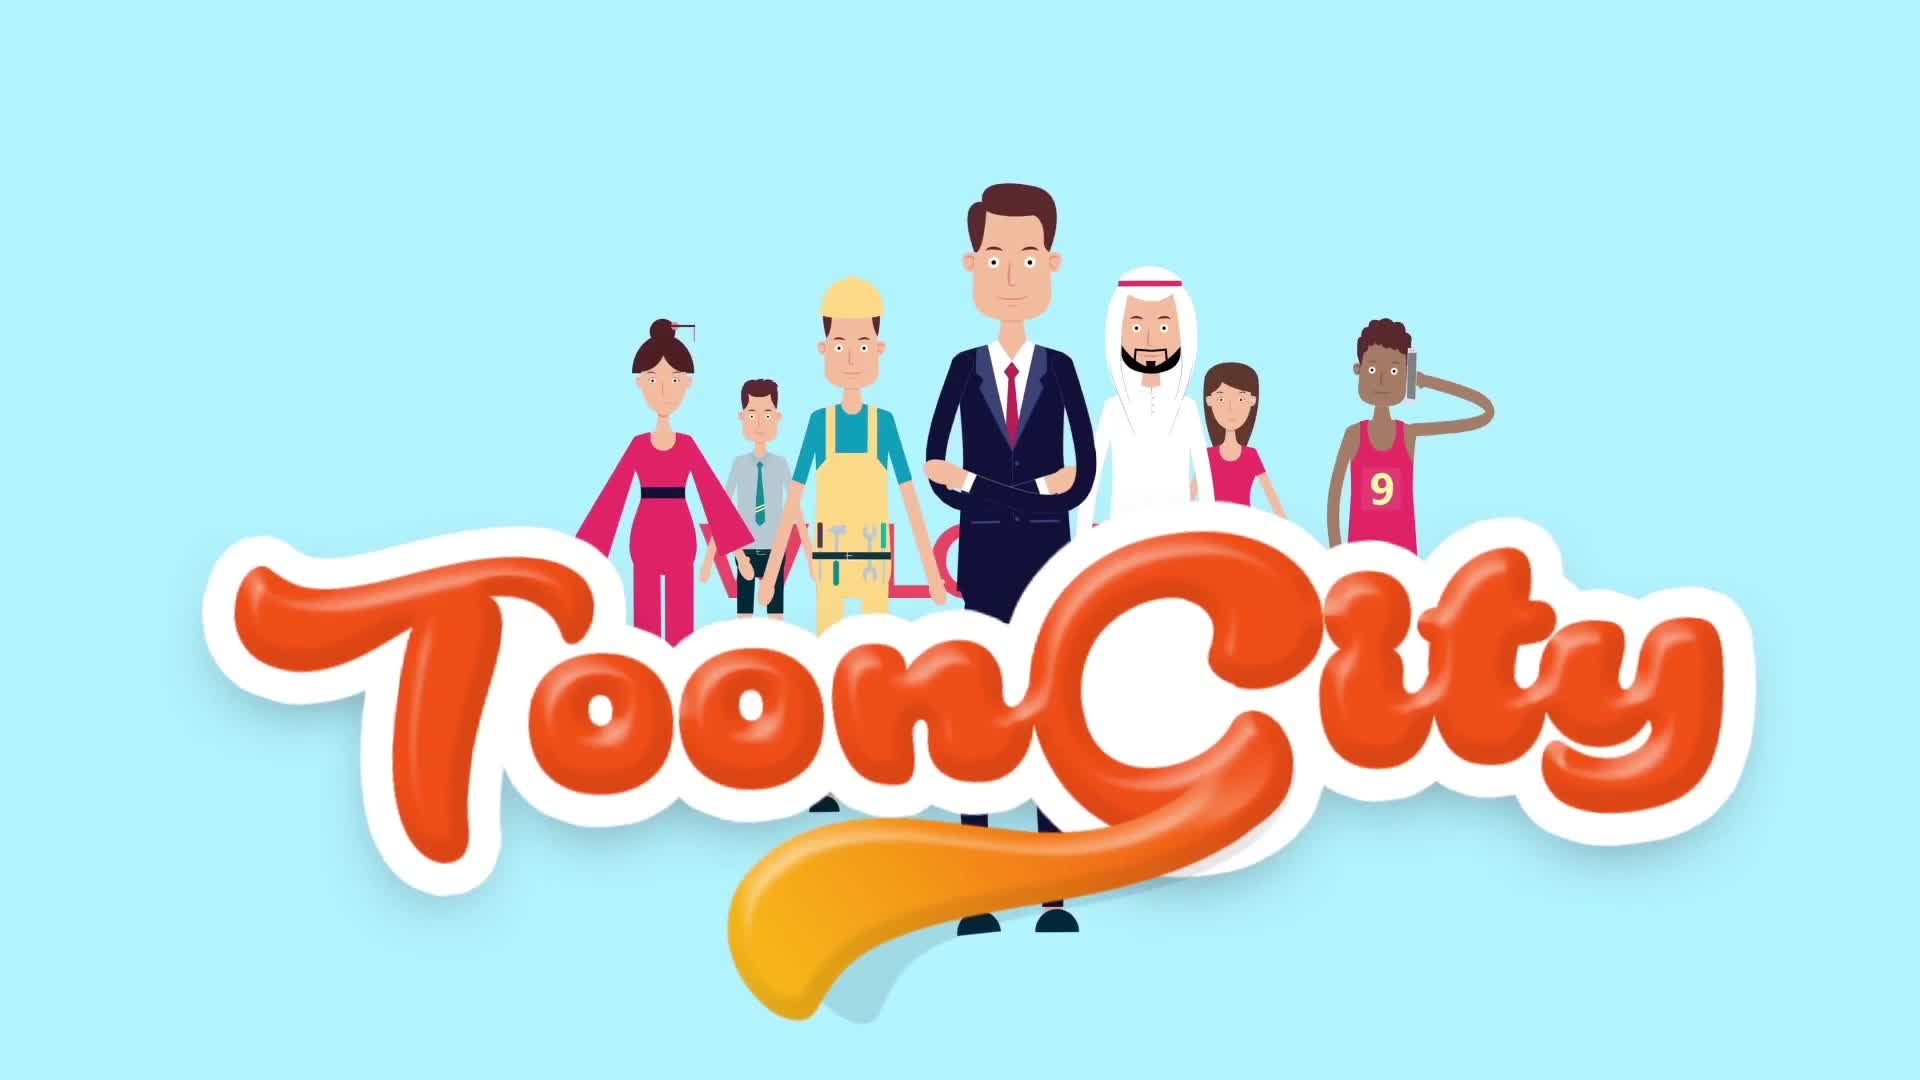 Explainer Video ToolKit | ToonCity - Download Videohive 19249121